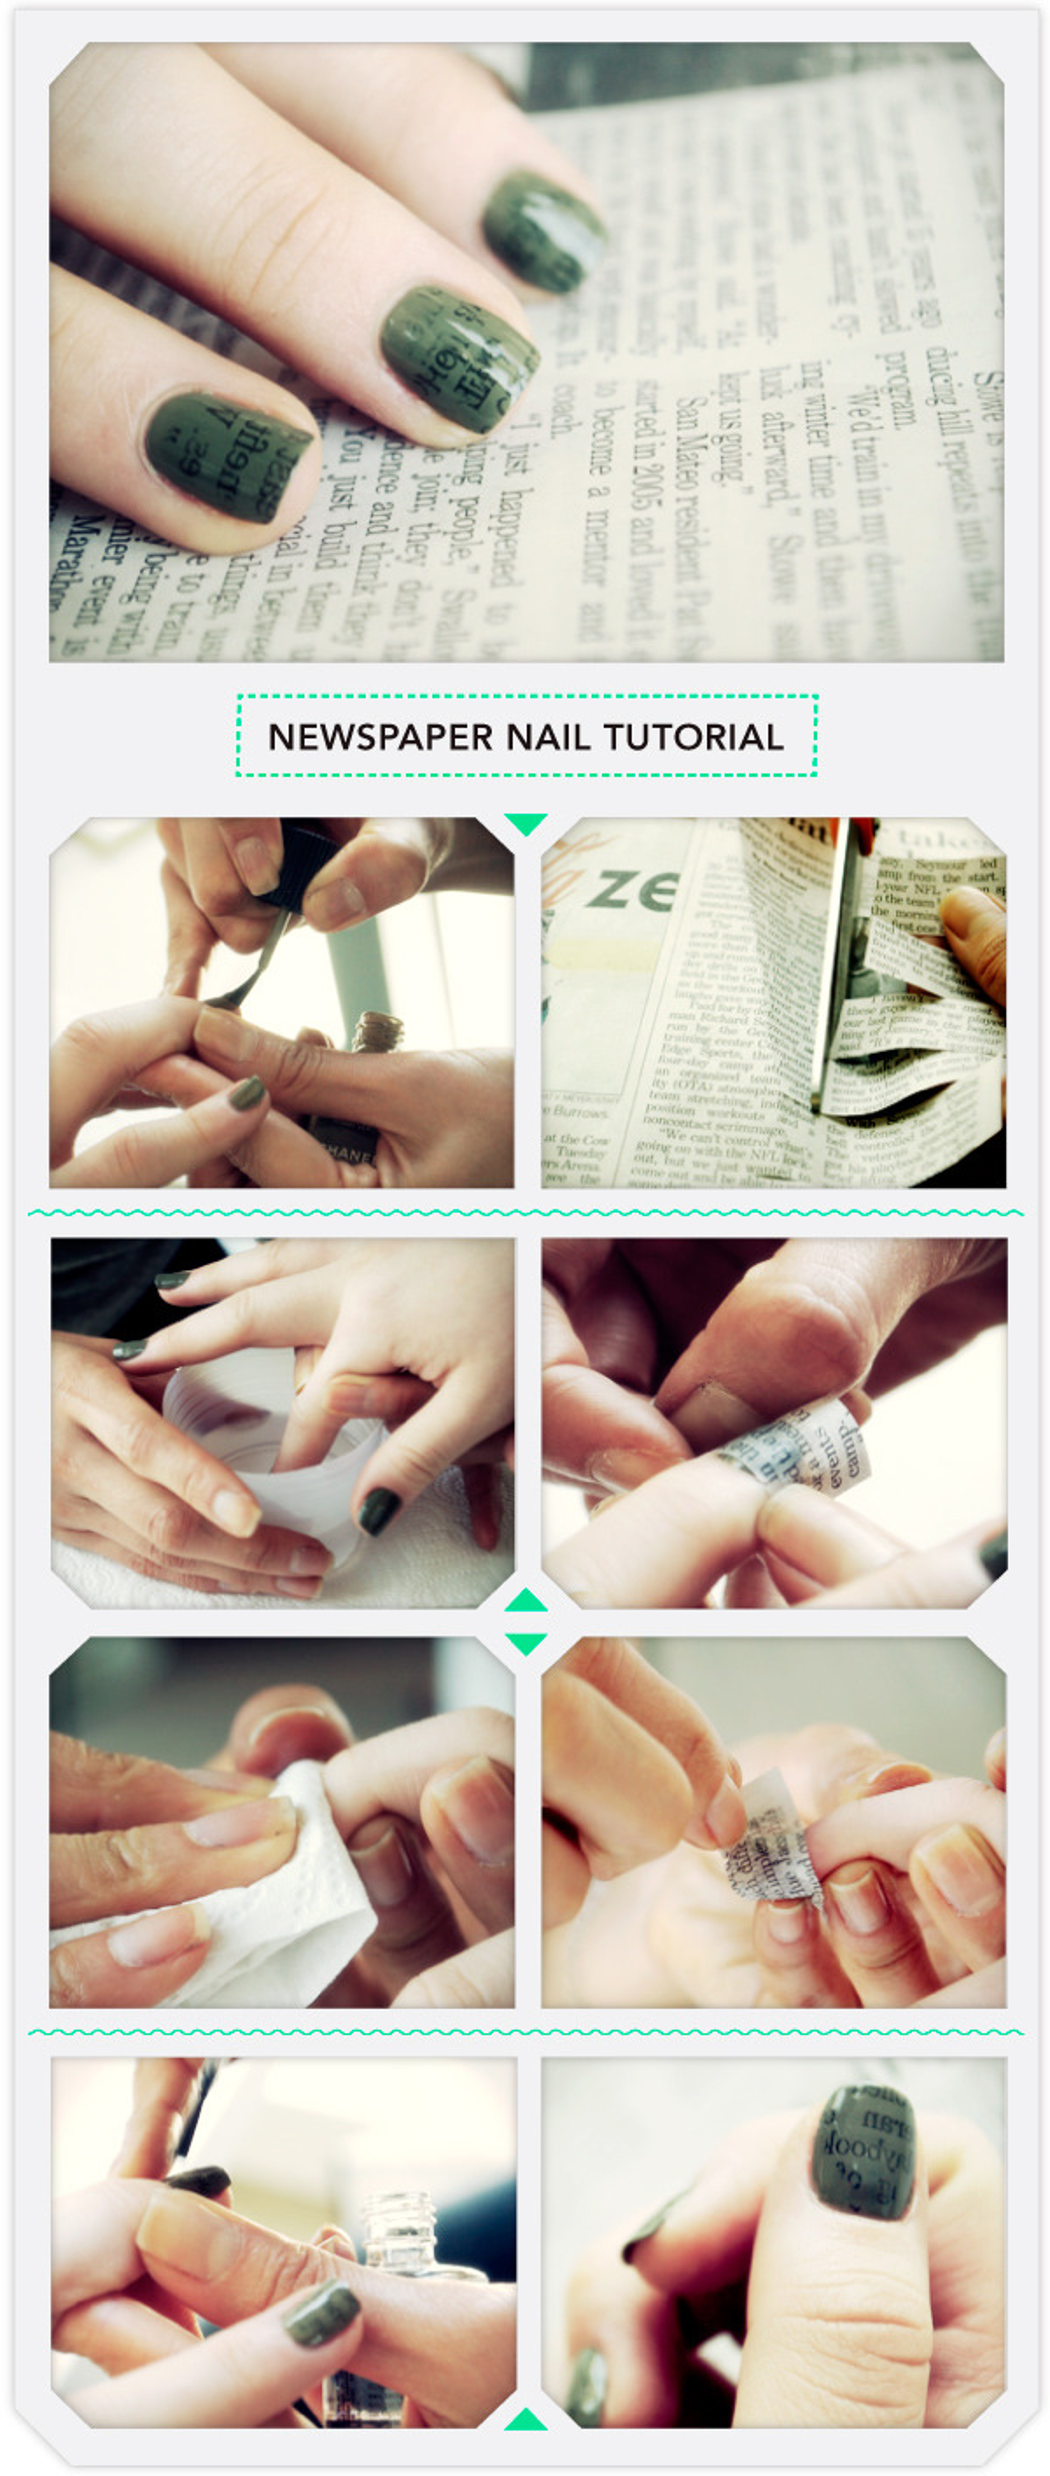 NAIL ART & TUTORIALS : Newspaper Nail Art Tutorial | Nail Ideas ...